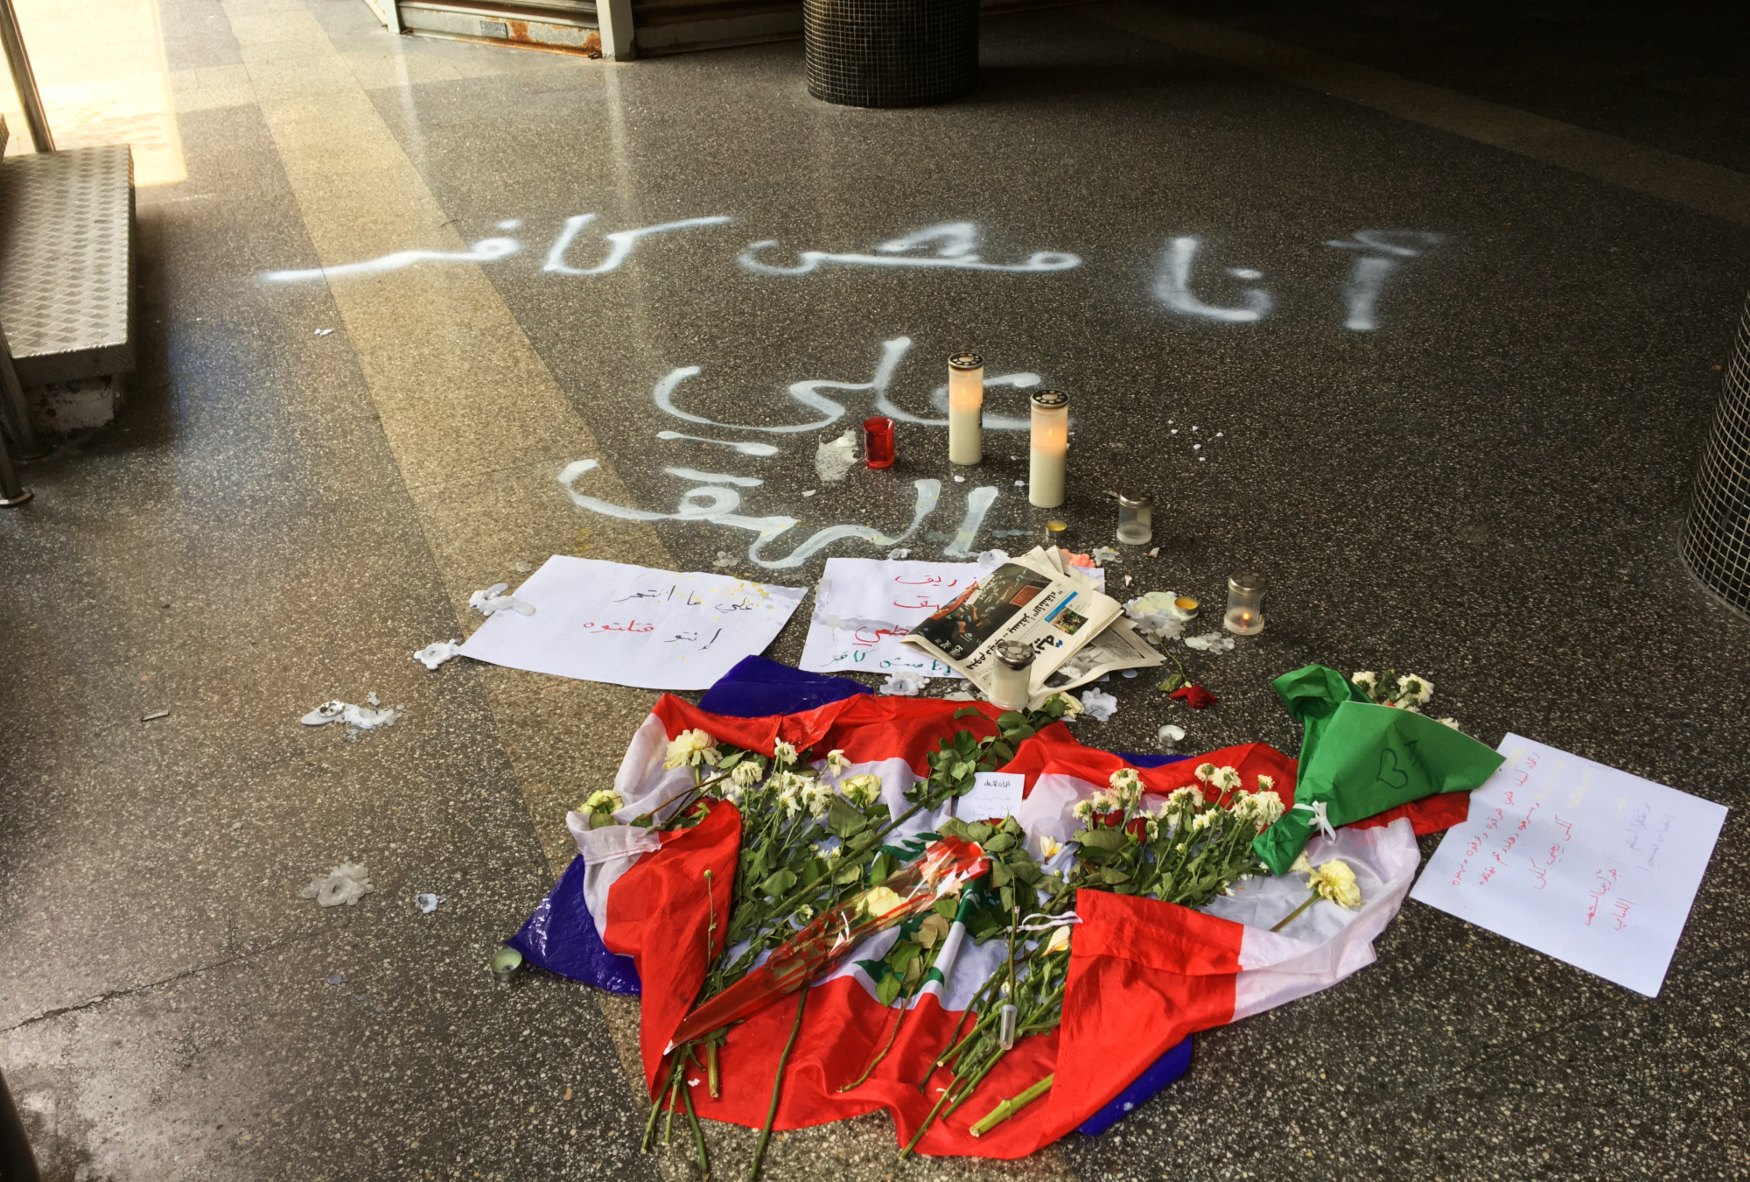 A memorial for Ali al-Haq in Beirut (MEE/Kareem Chehayeb)